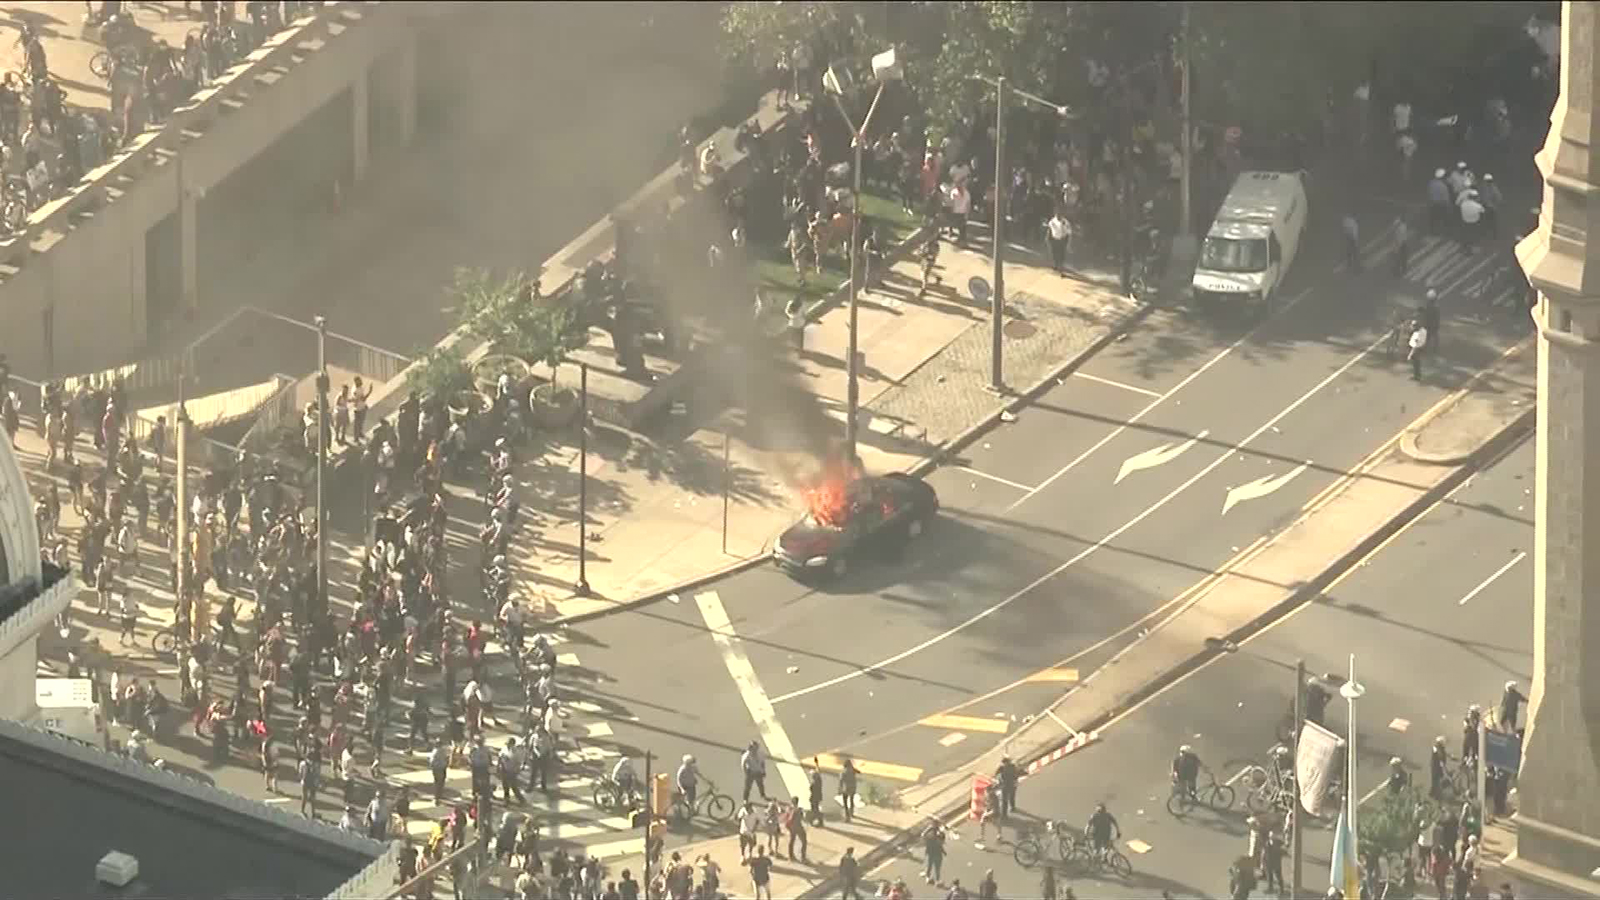 A vehicle fire burns in the street while protesters look on in Philadelphia, on May 30.